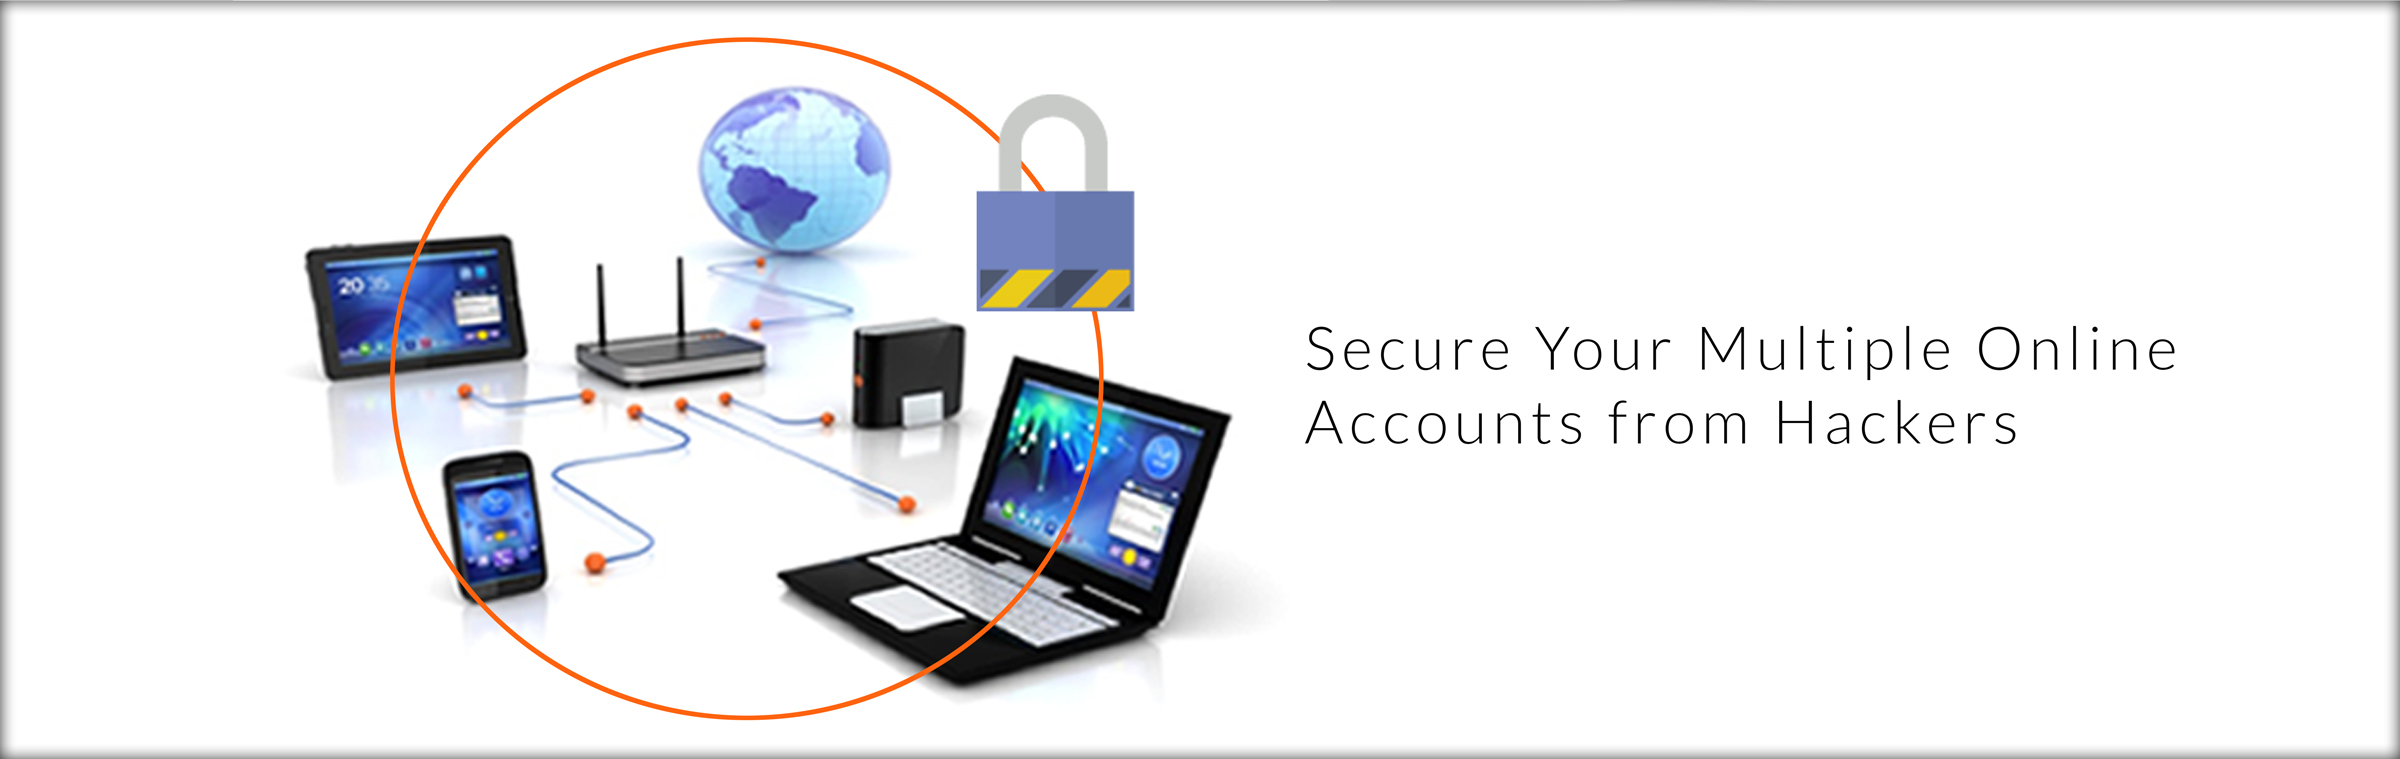 Two Factor Authentication: Secure Your Multiple Online Accounts from Hackers